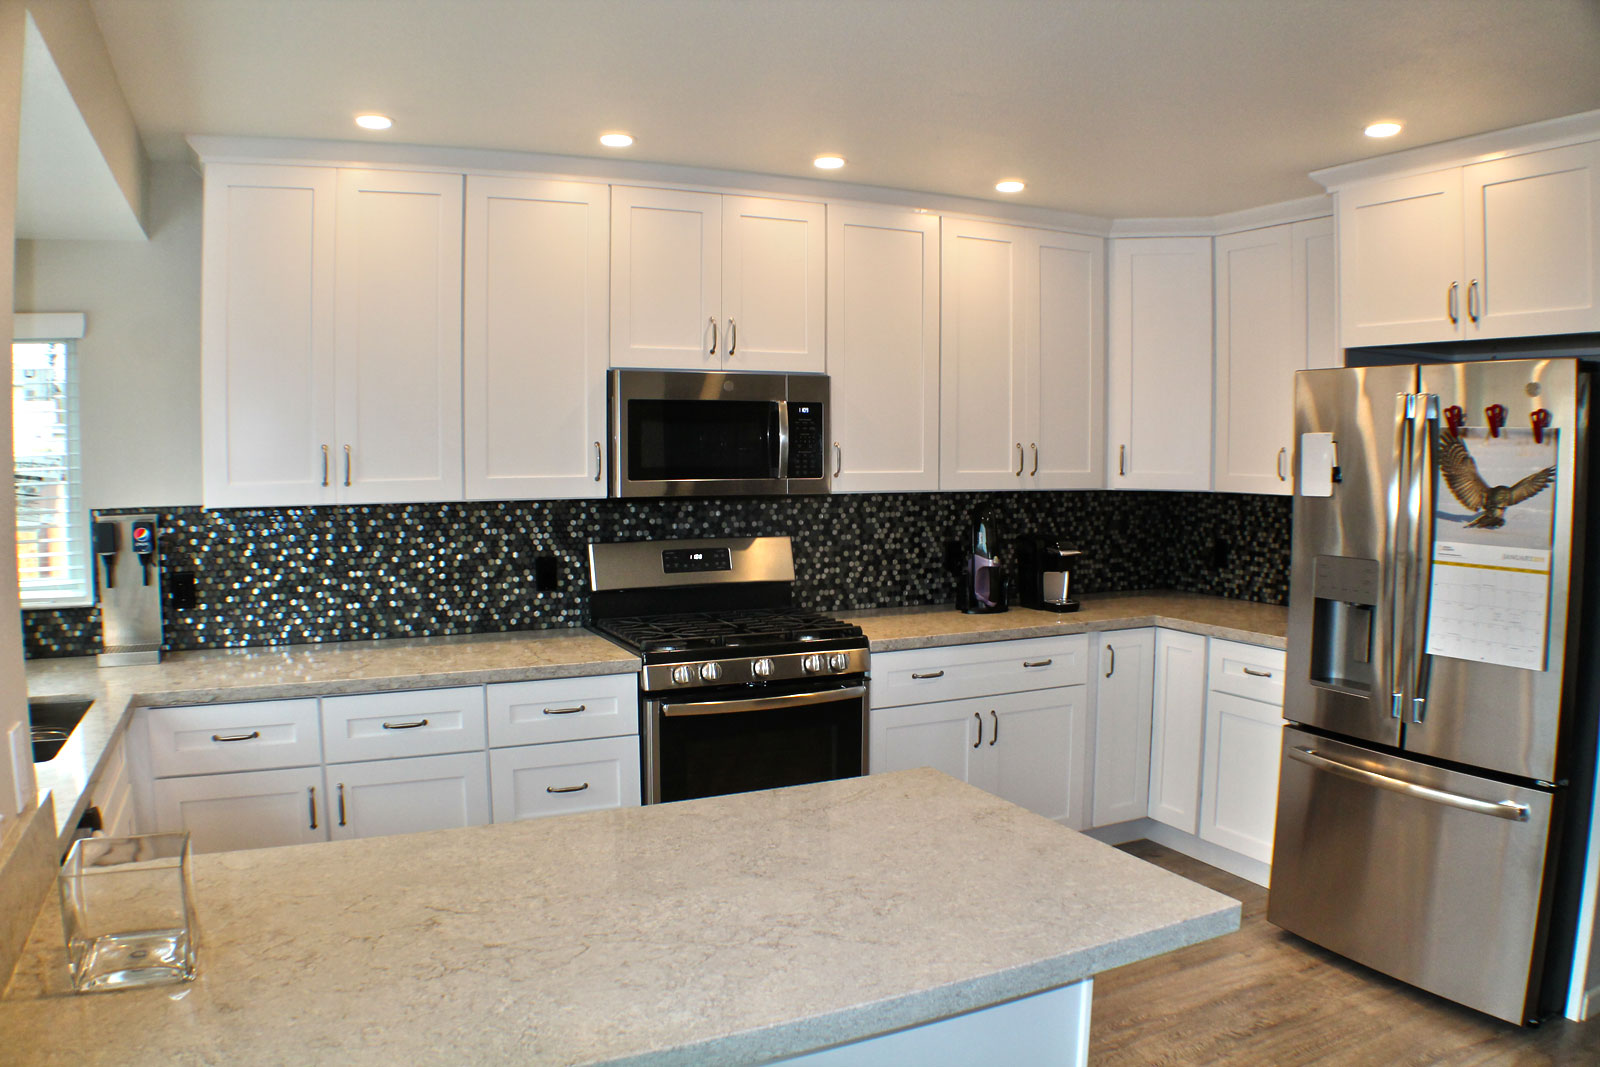 Custom crafted kitchen by Prestige Homes & Remodel